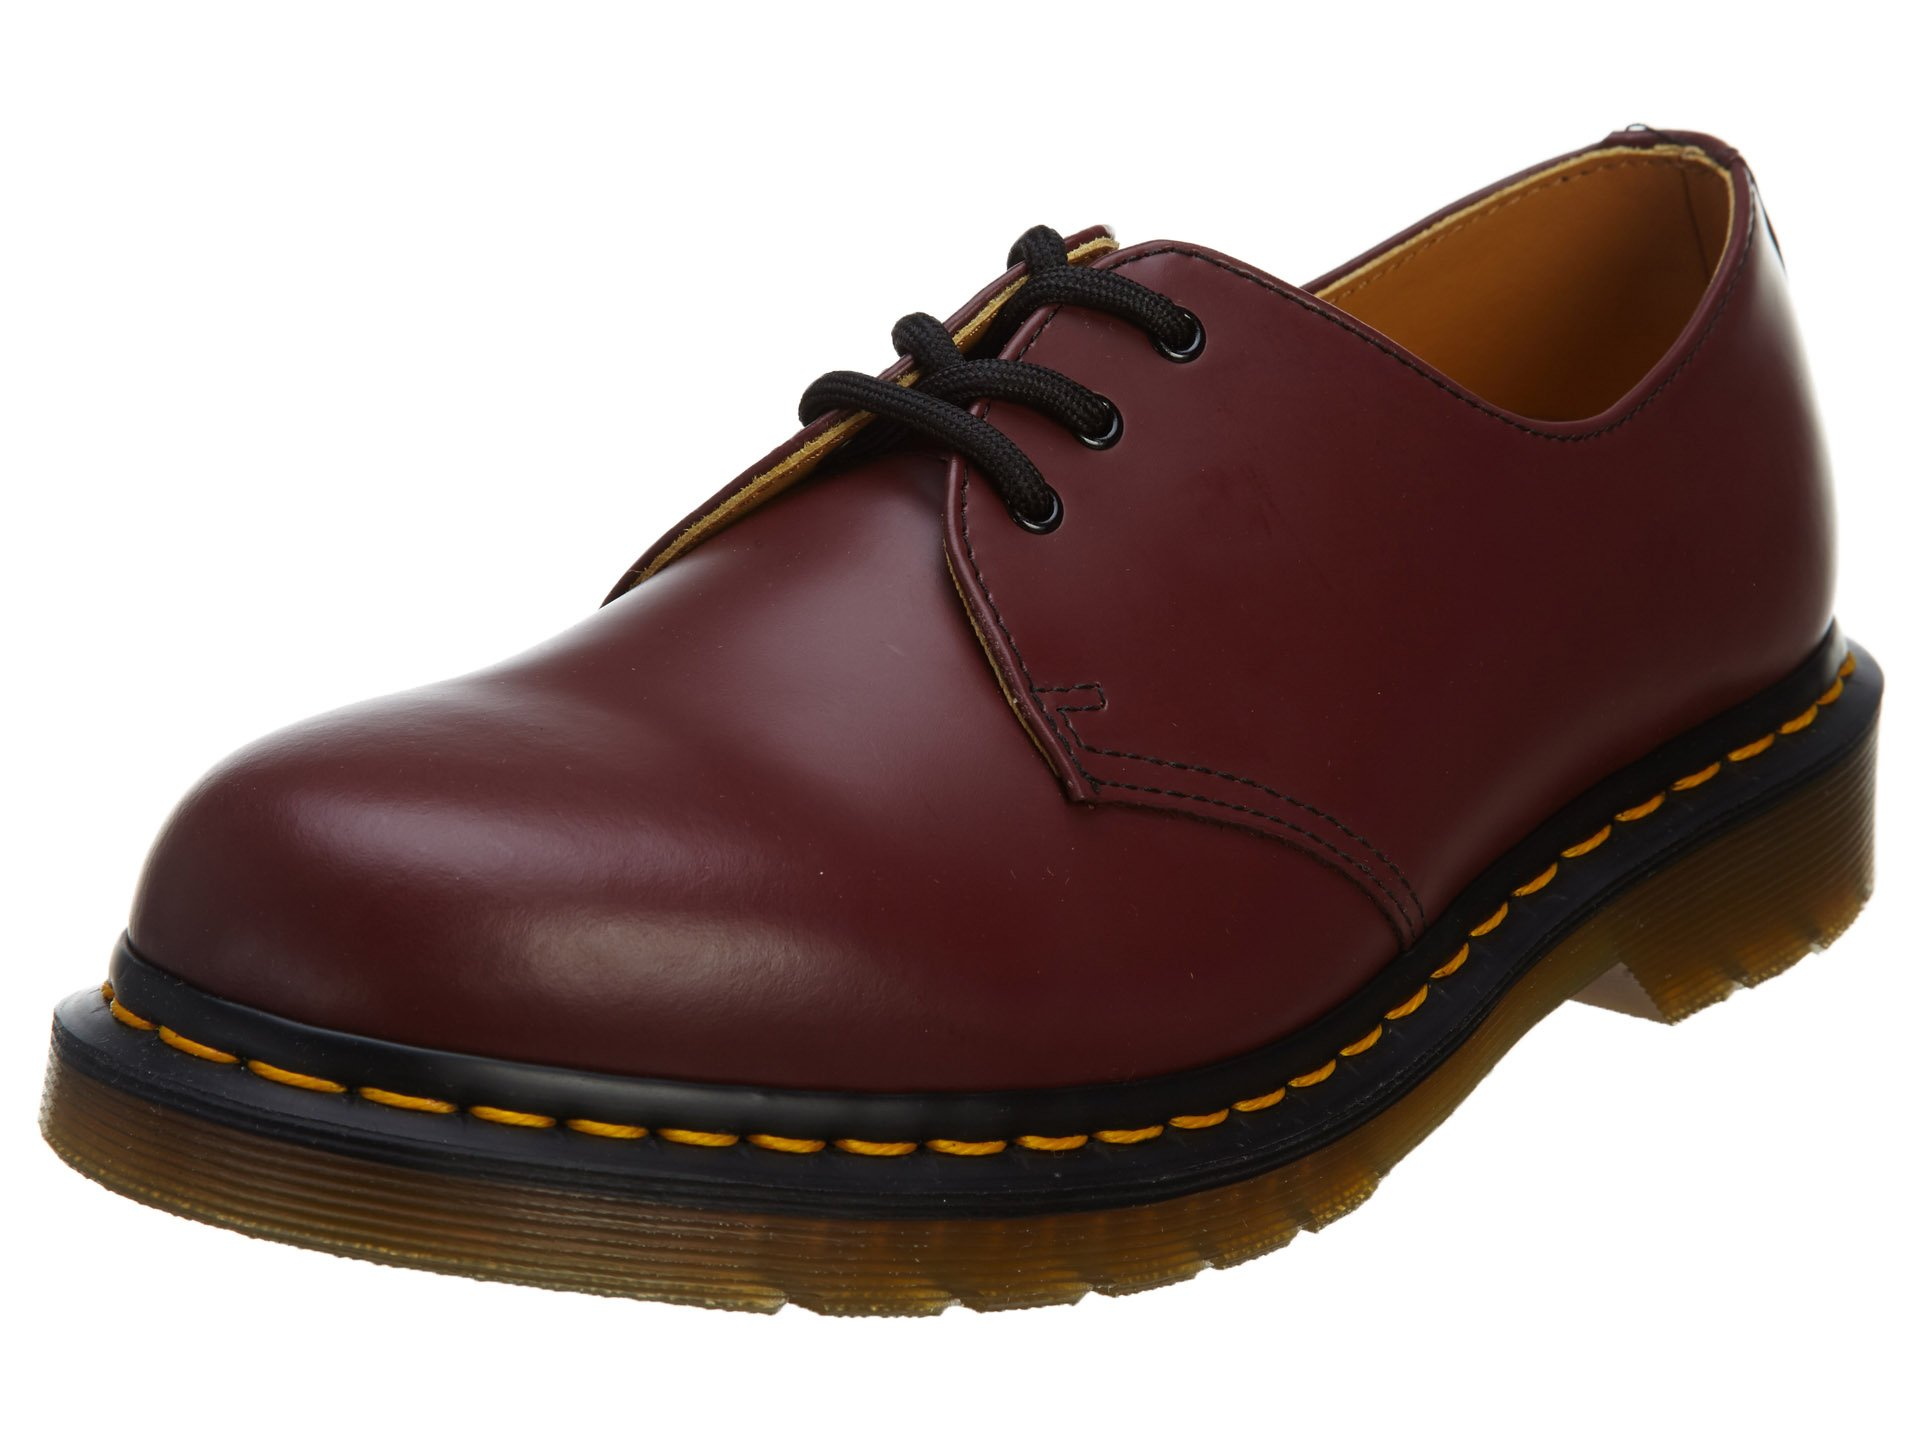 Dr. Martens 1461 Oxford Shoes Unisex Style: 11838600-CHERRY RED Size: 46 by Dr. Martens